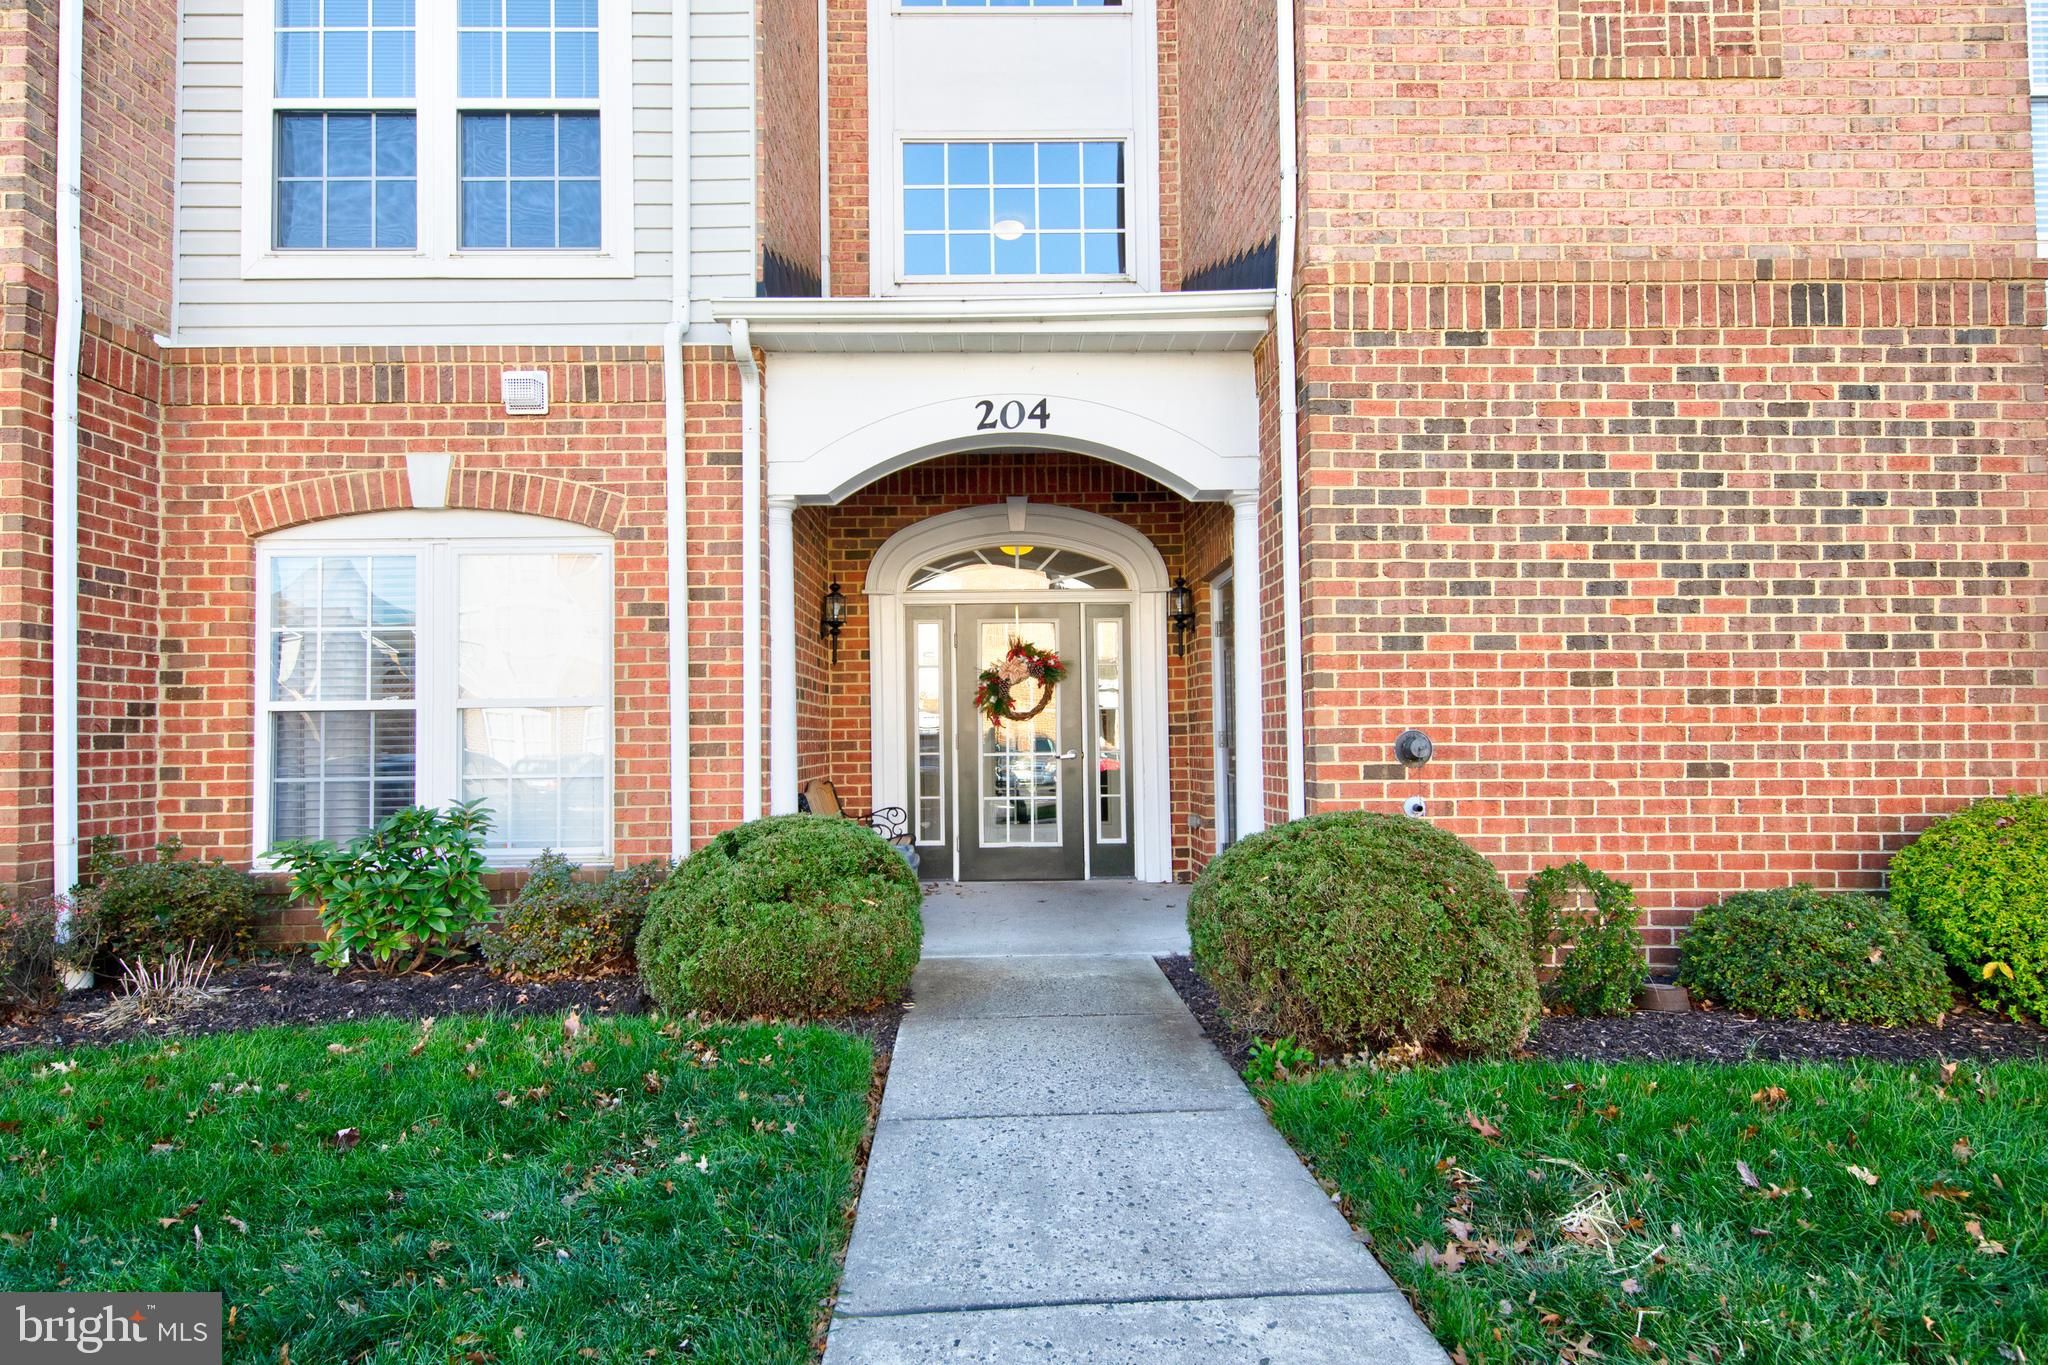 Lightly lived in and freshly painted 2 bedroom 2 bath condo in highly desireable  Kings Crossing.